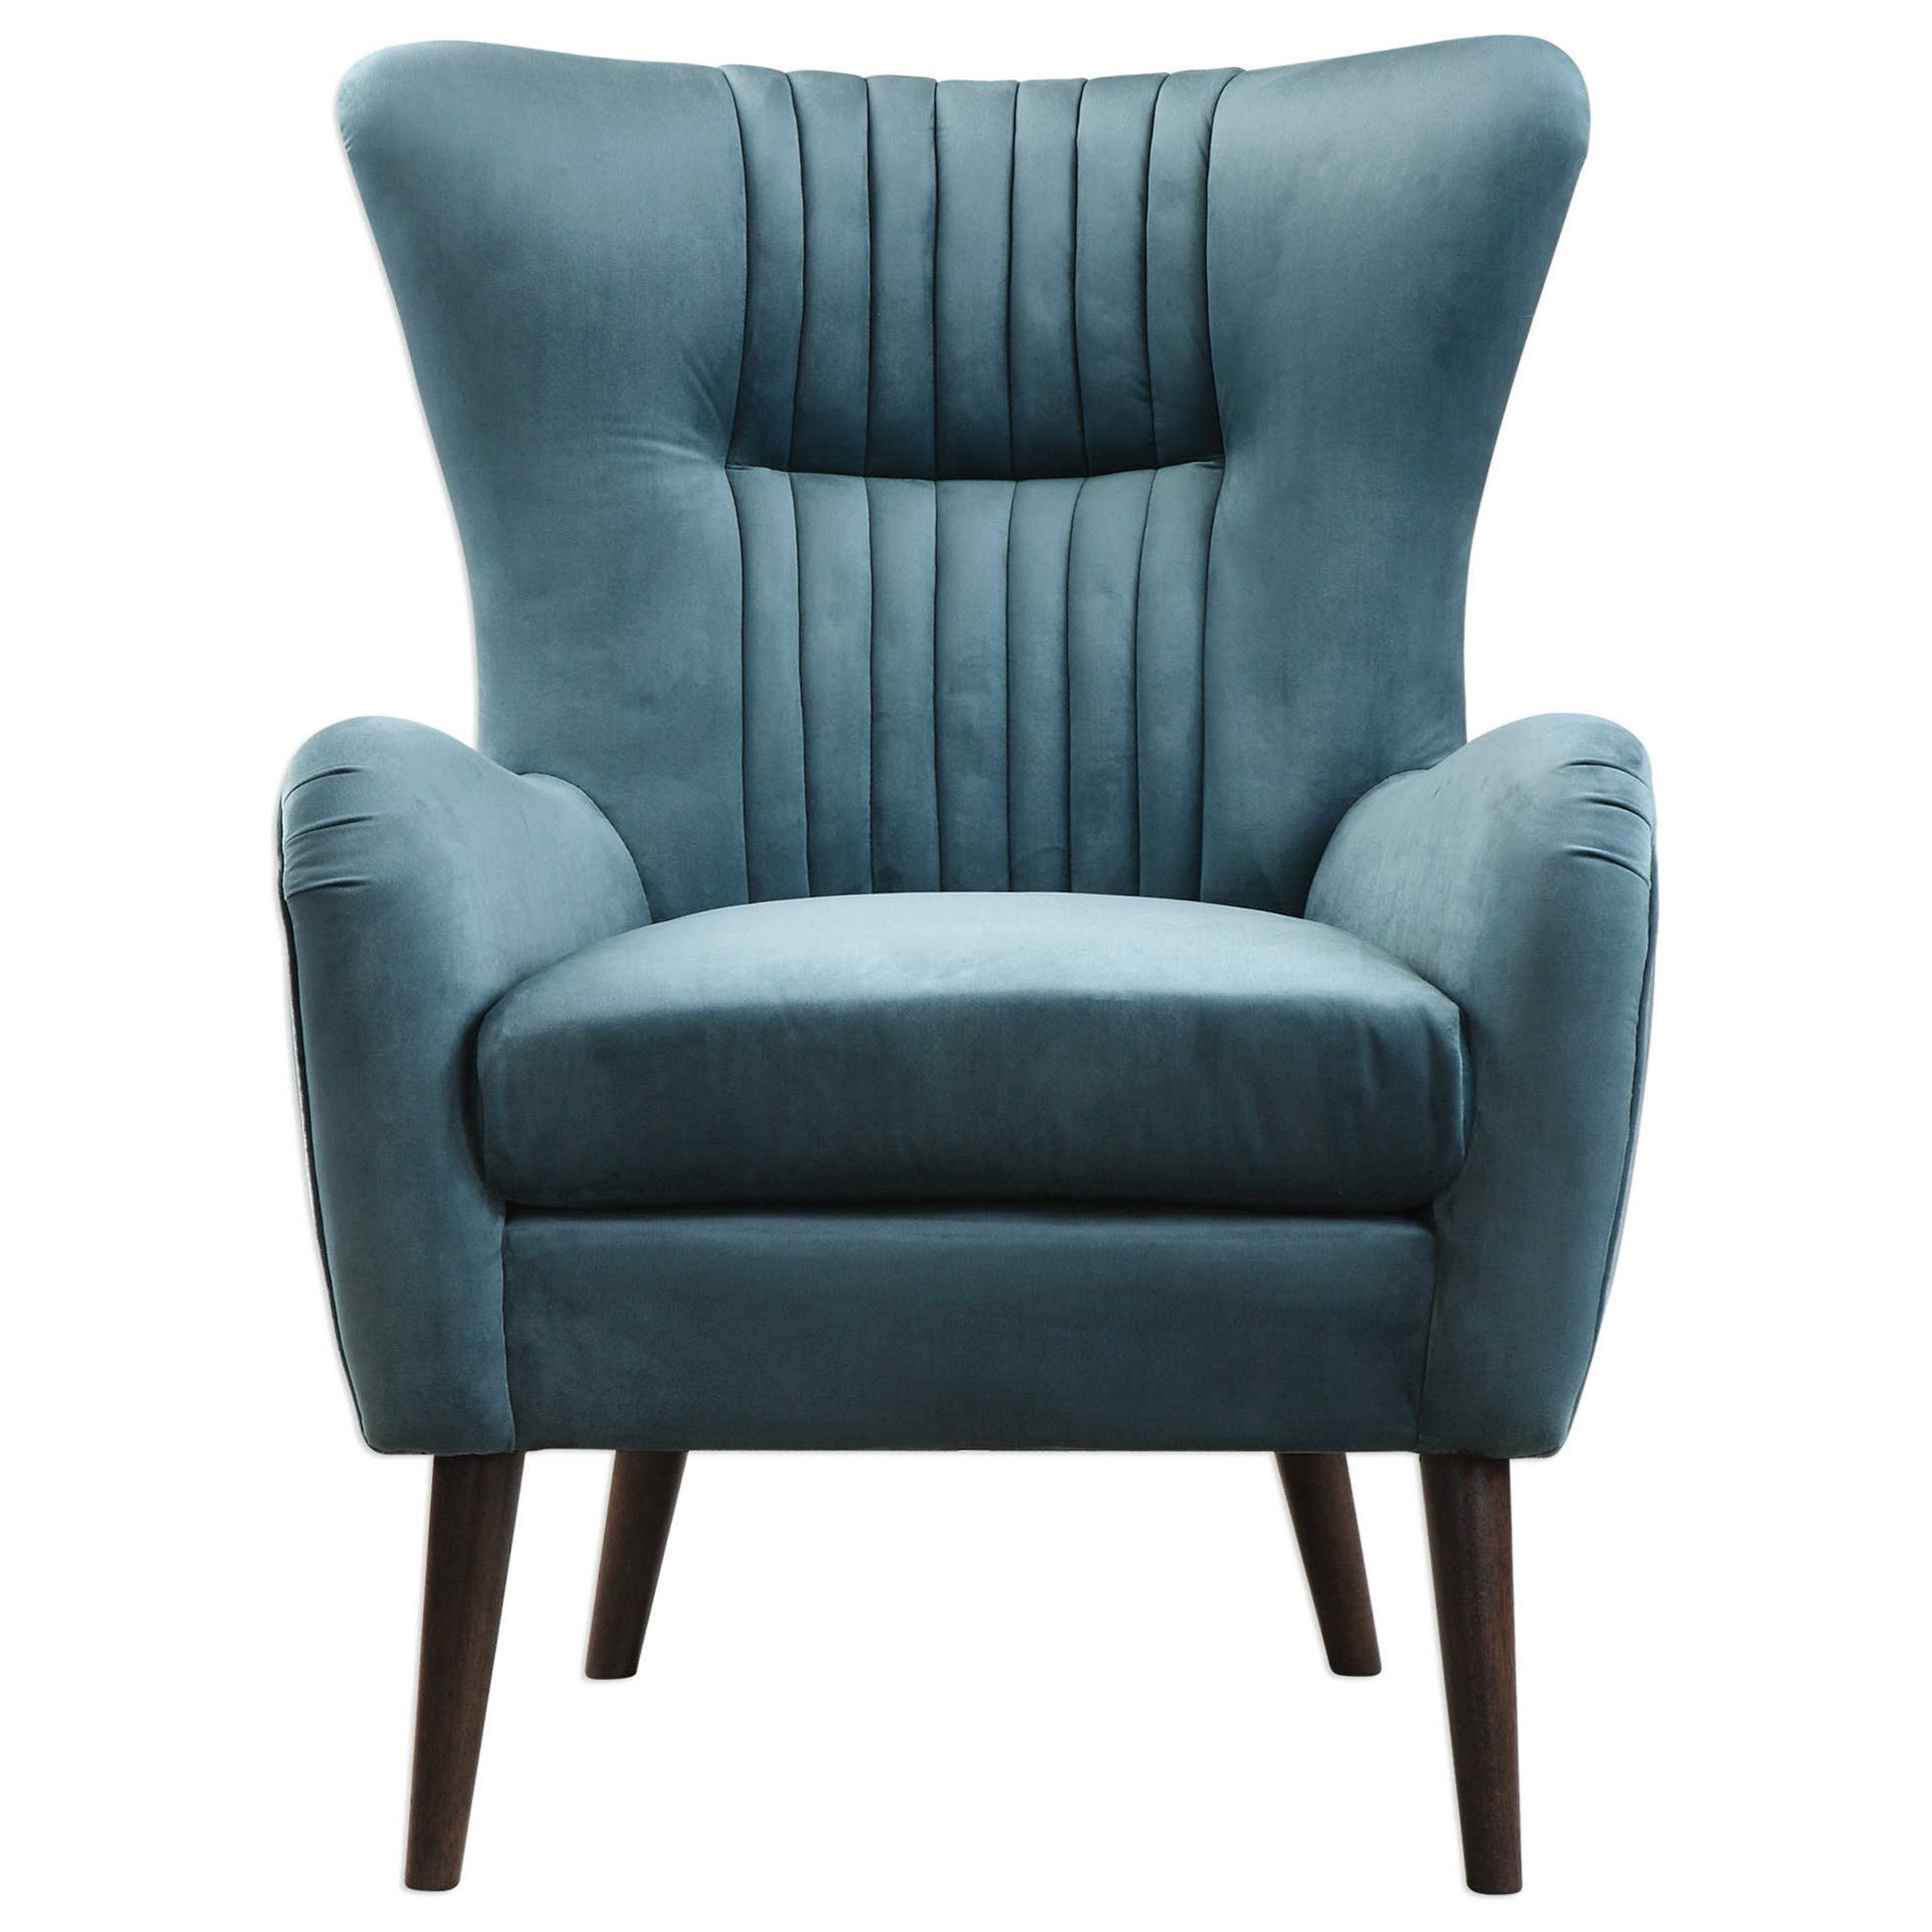 Accent Furniture - Accent Chairs Dax Mid-Century Accent Chair by Uttermost at Suburban Furniture